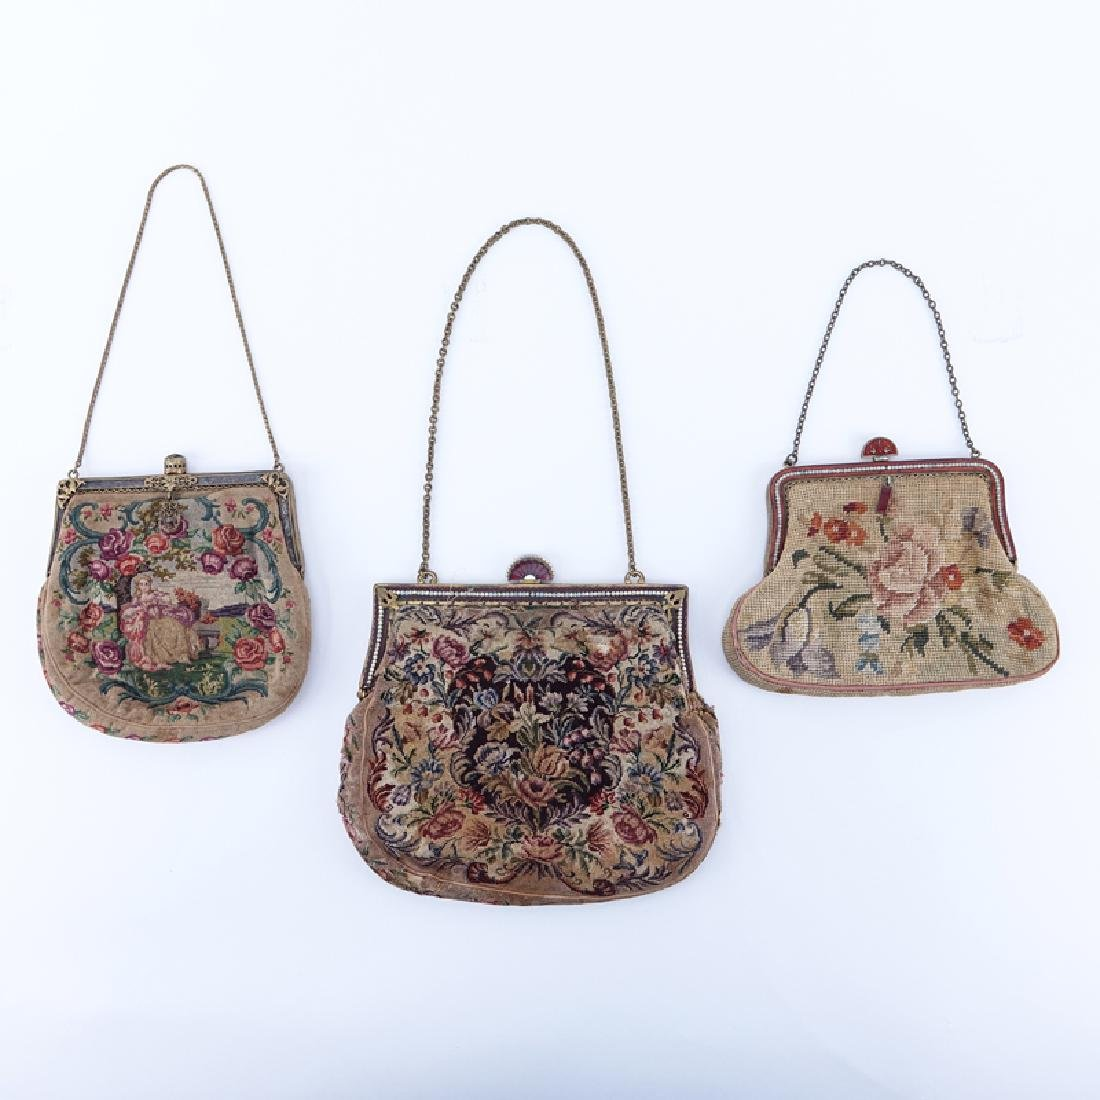 Collection of Three (3) Antique Tapestry Purses.